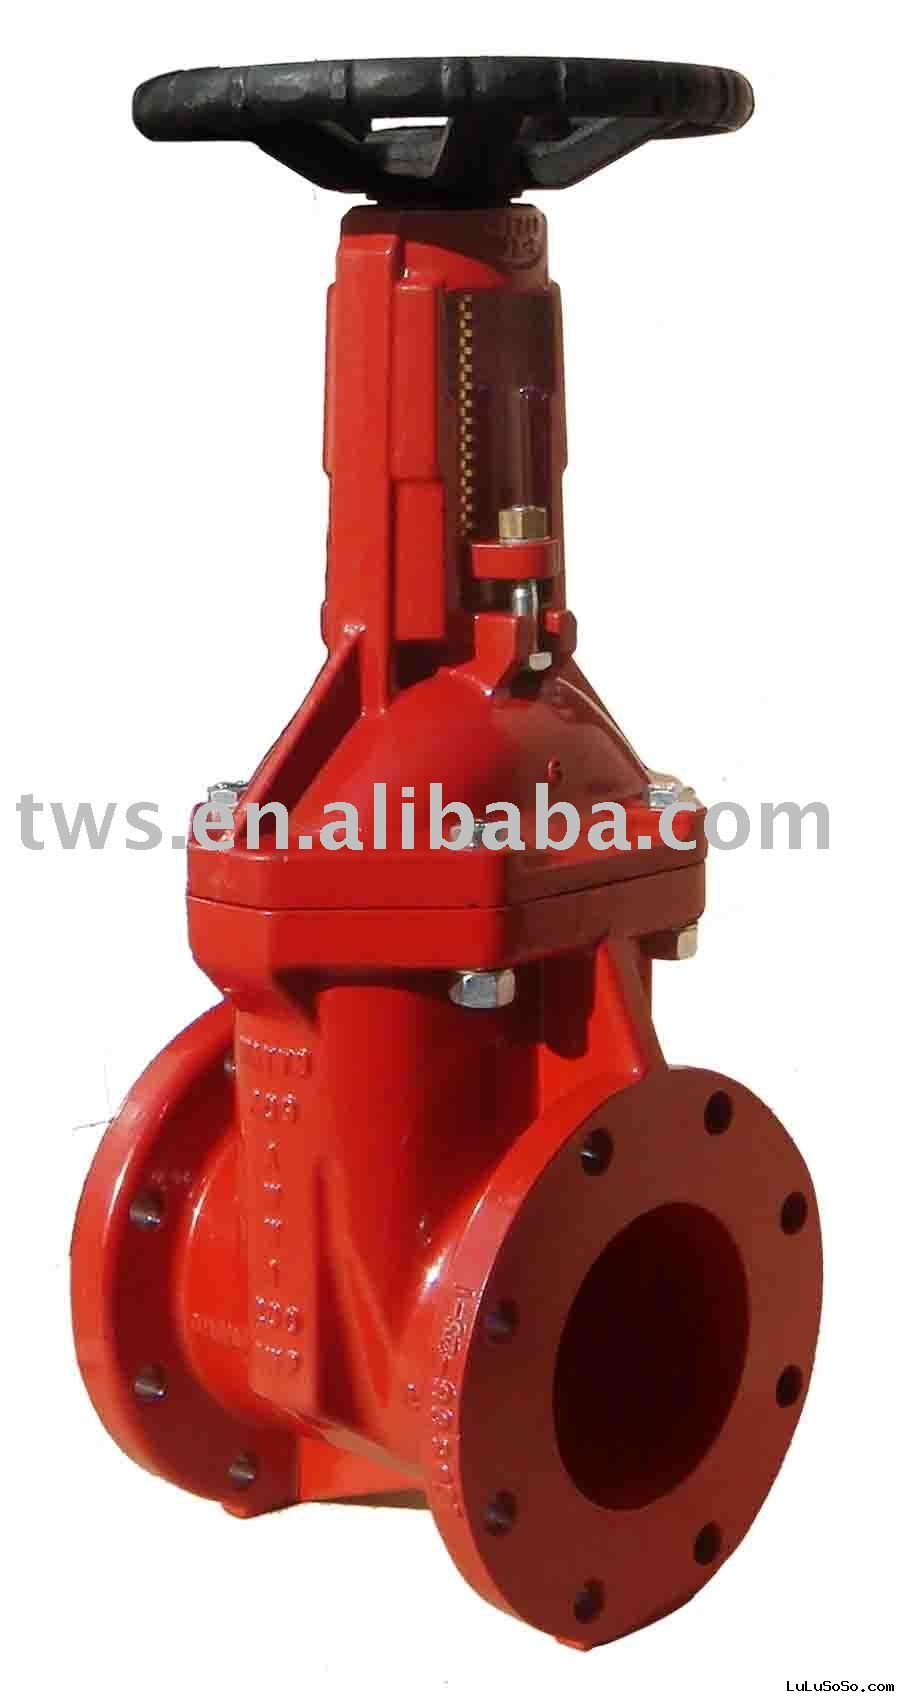 Series AZ resilient seated gate valve